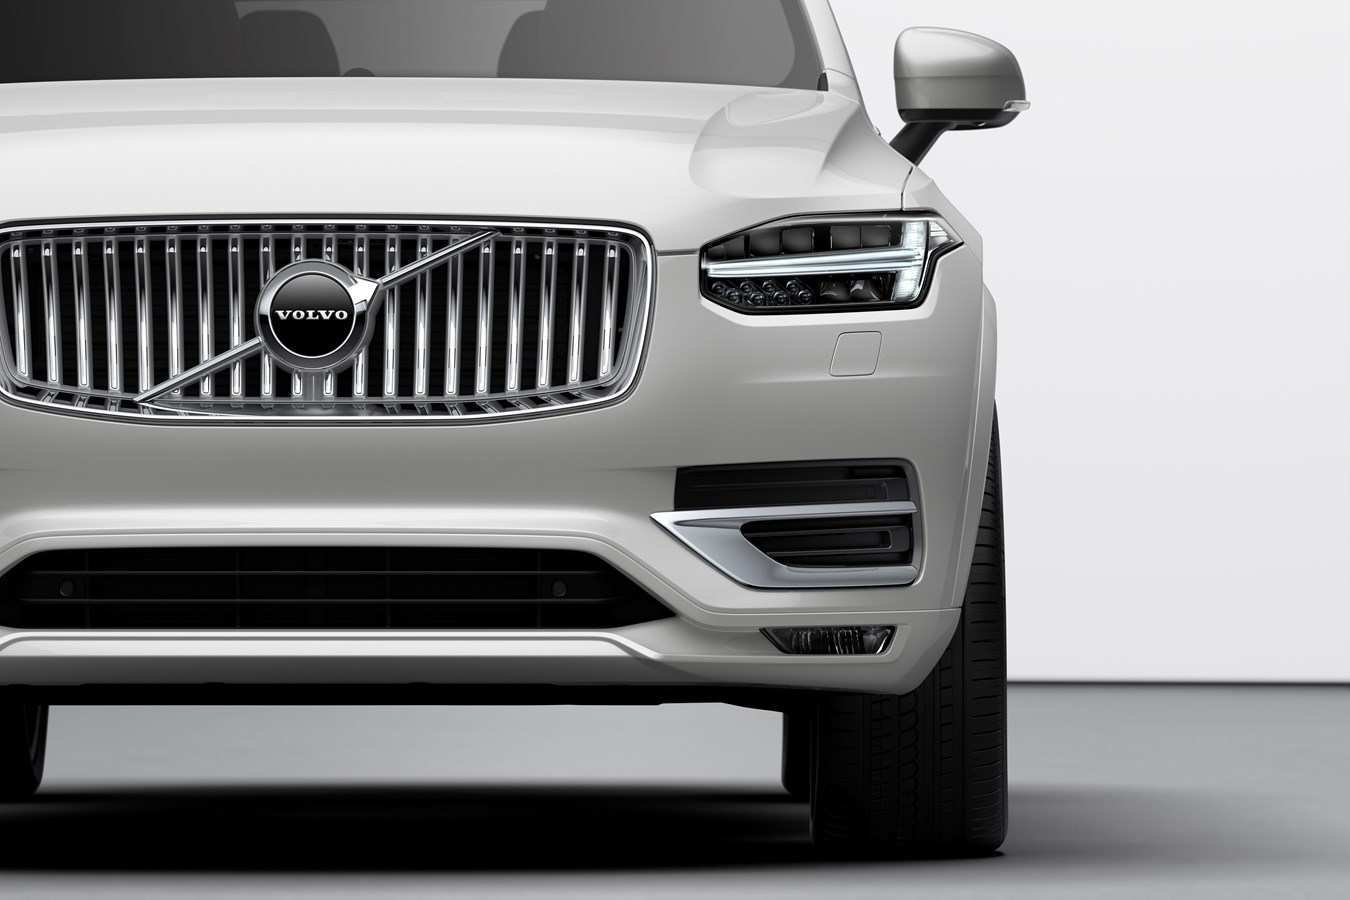 61 All New Volvo Xc90 Facelift 2019 Picture